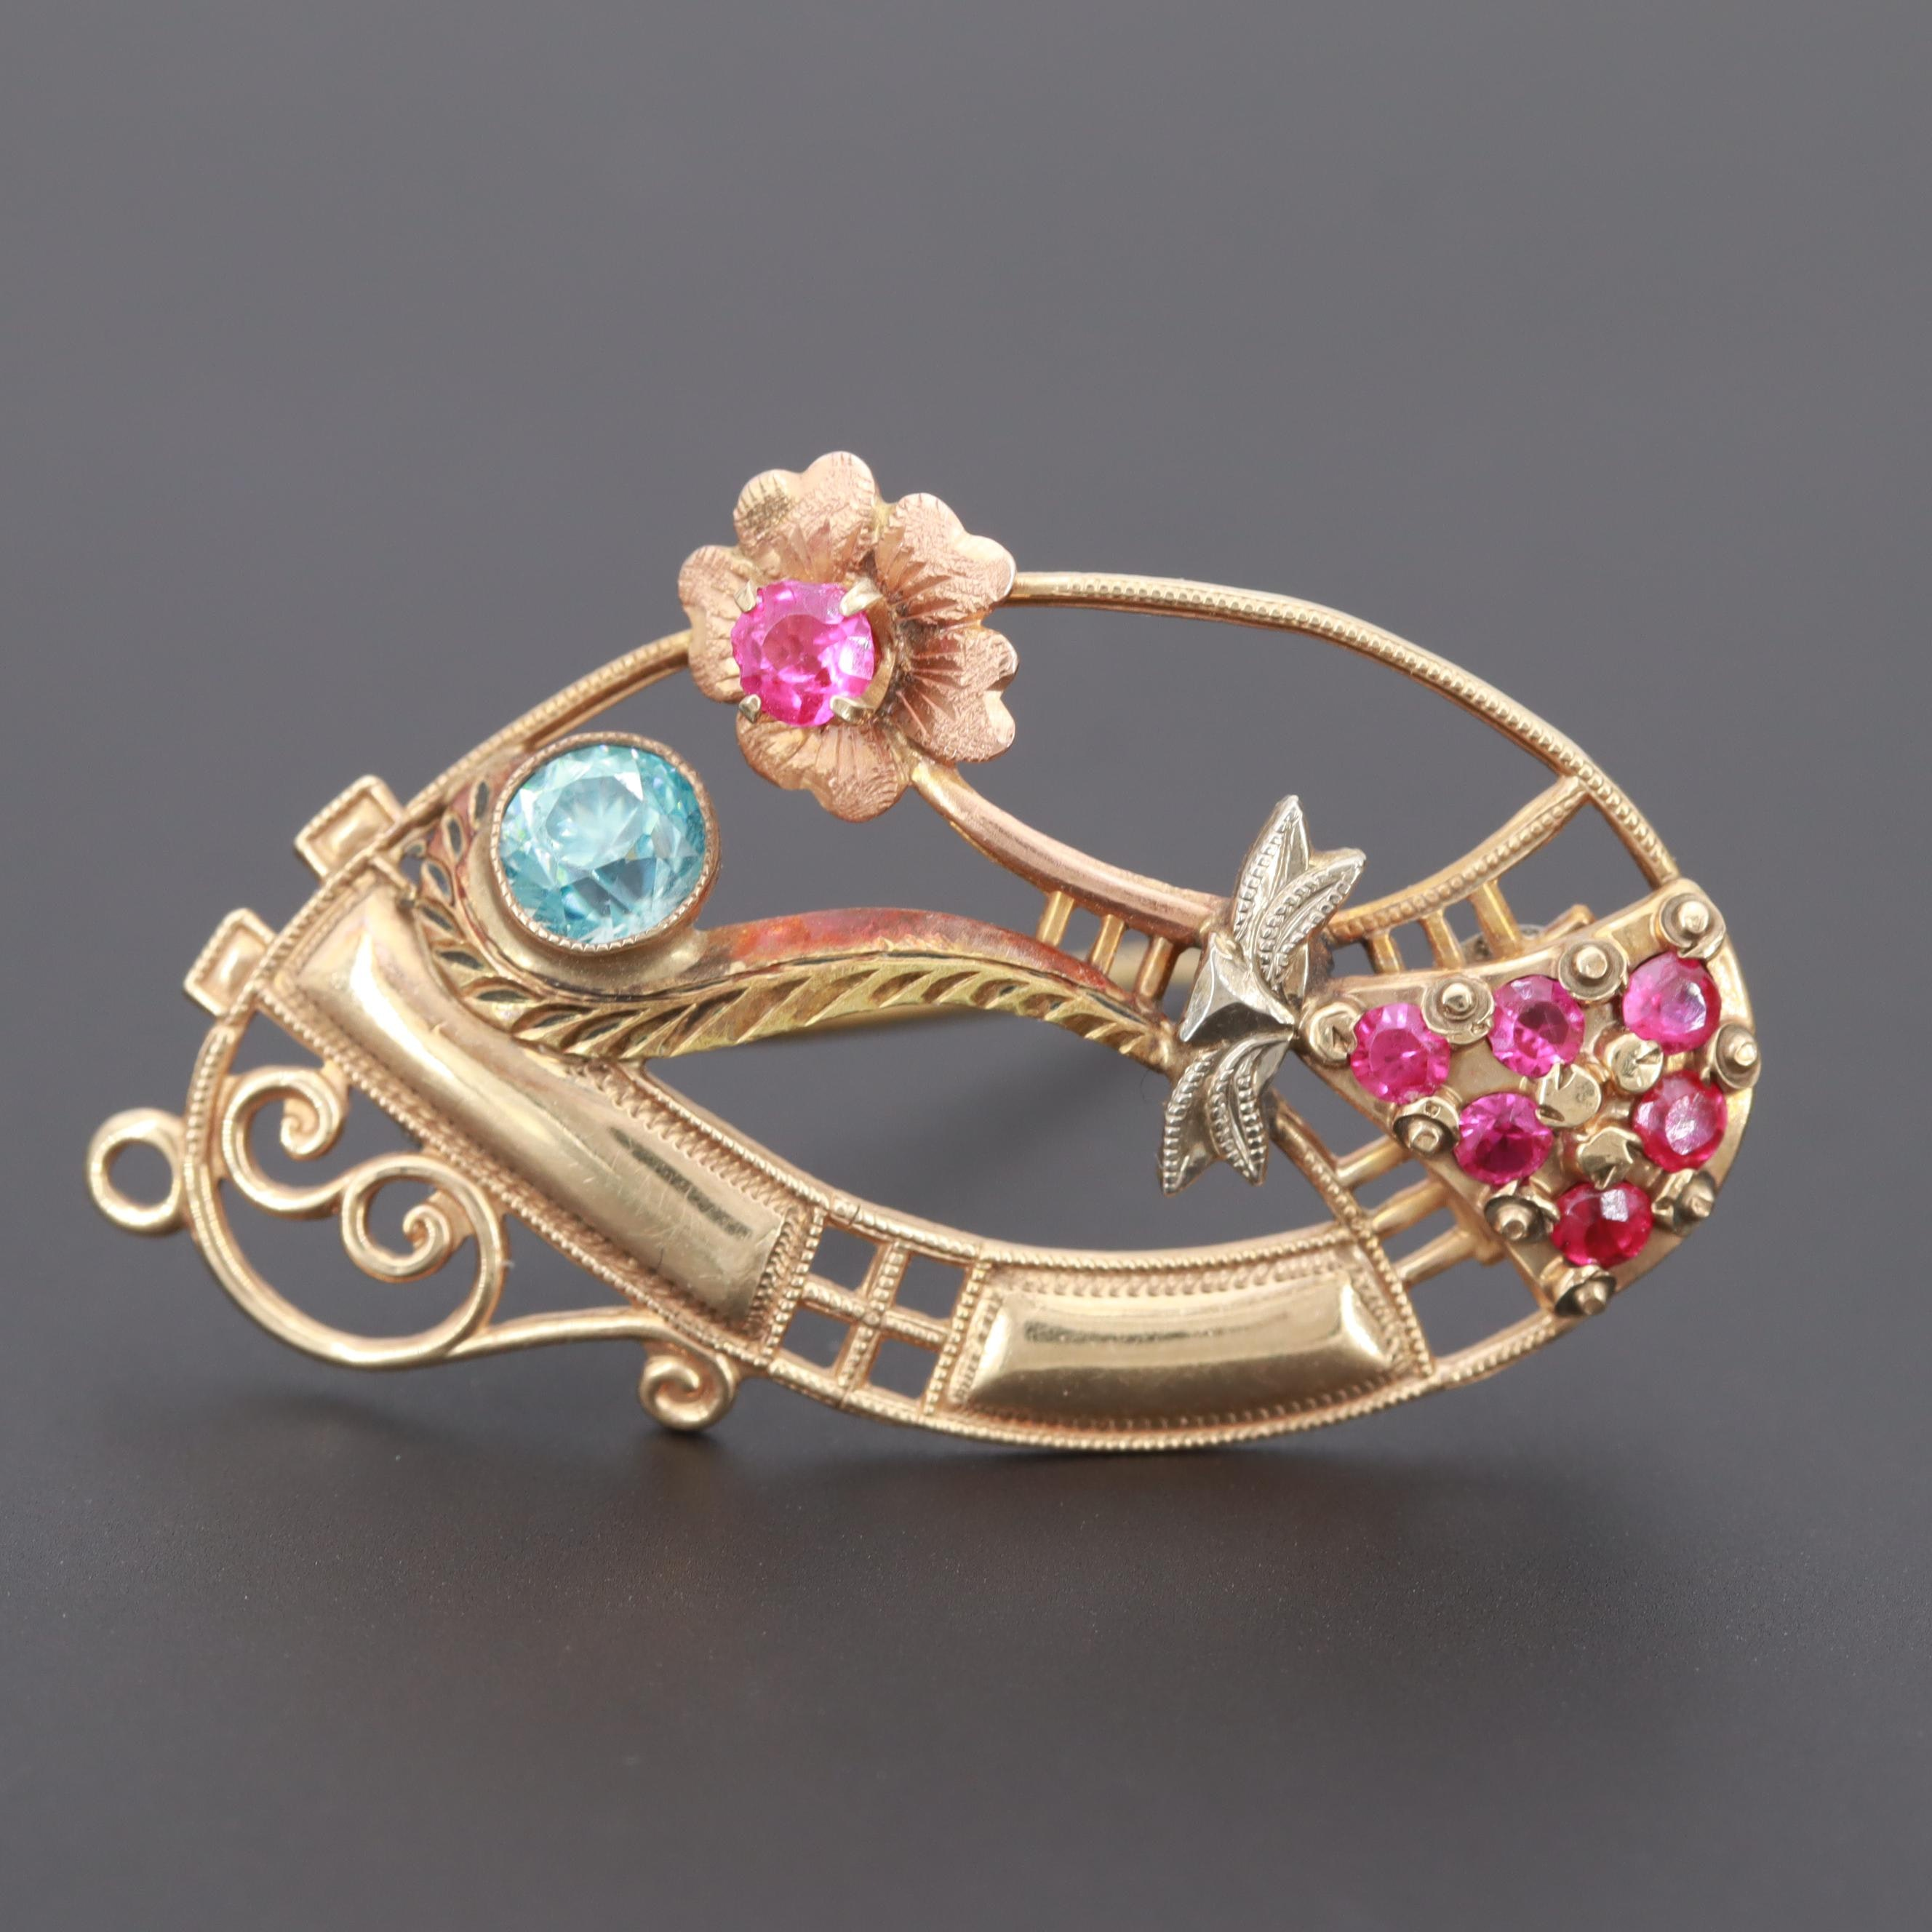 10K Yellow Gold Synthetic Ruby and Blue Zircon Brooch